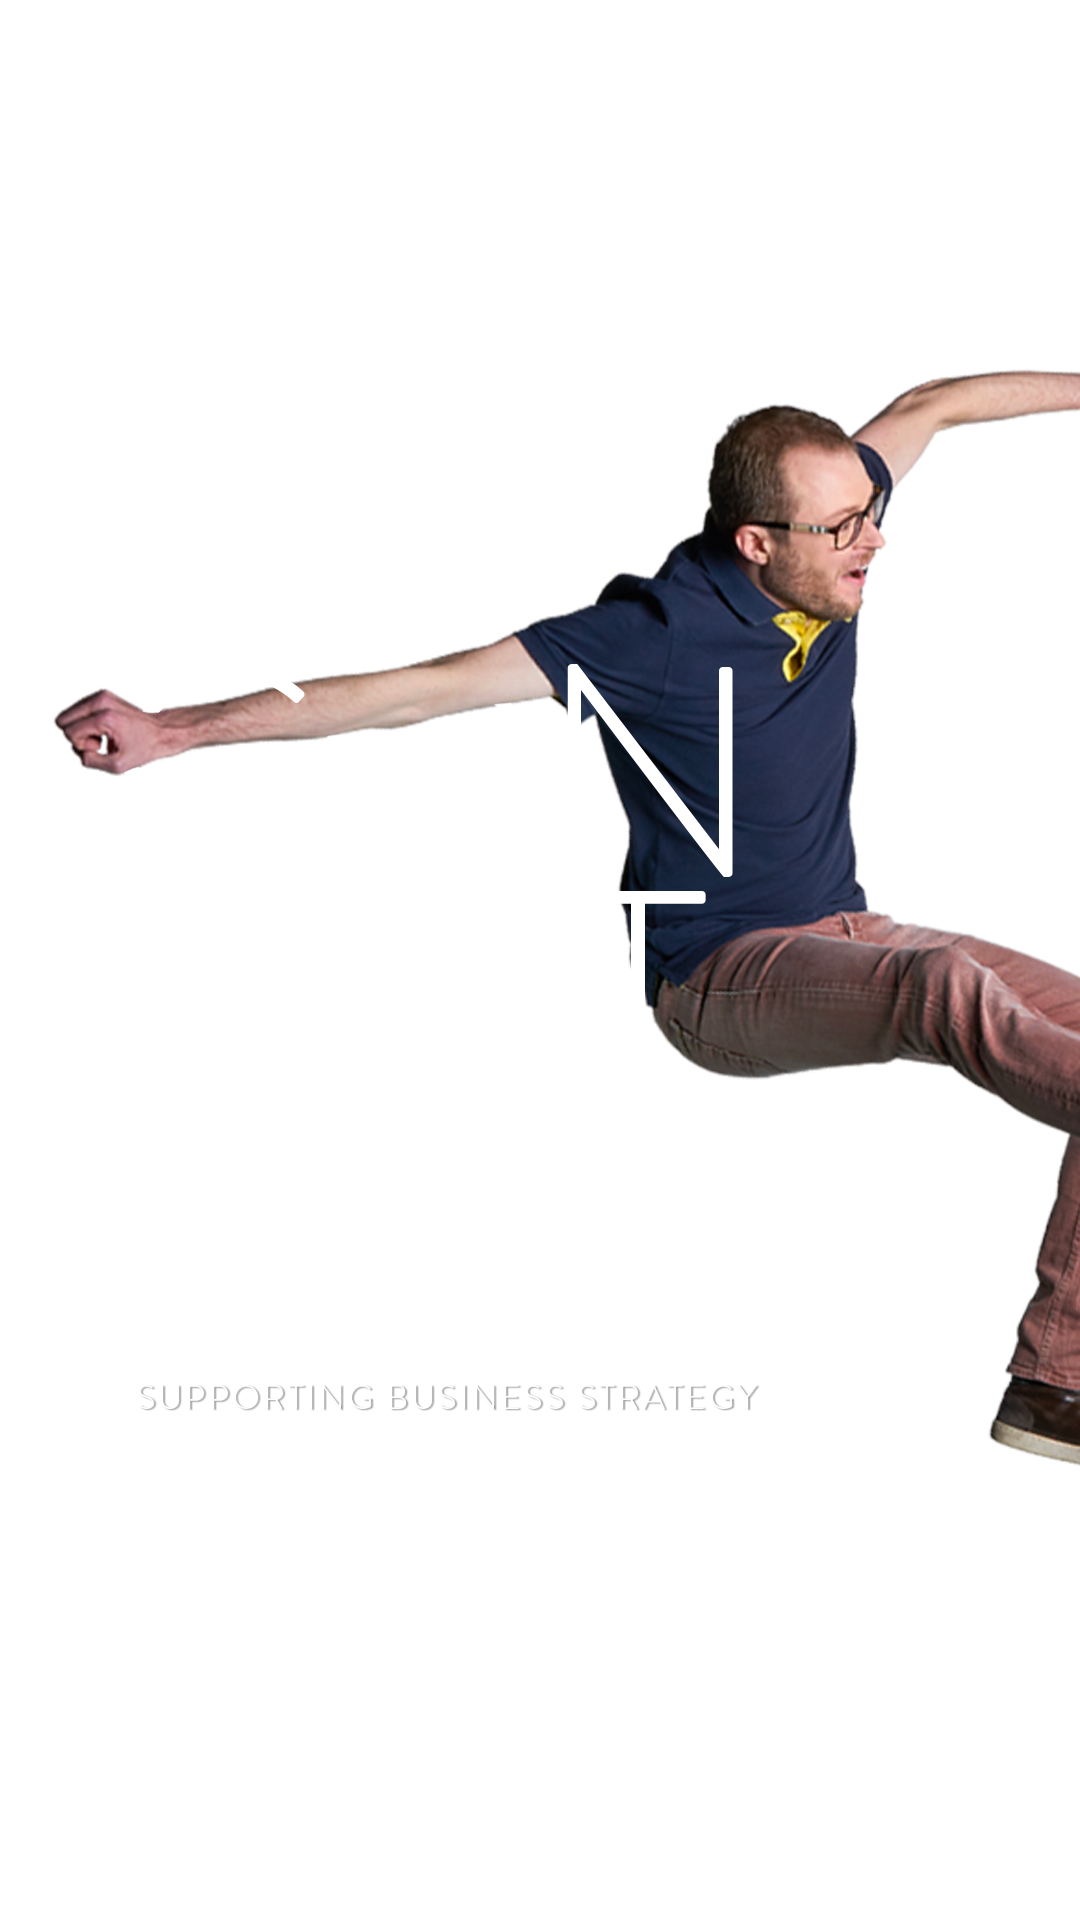 Our convictions: supporting business strategy